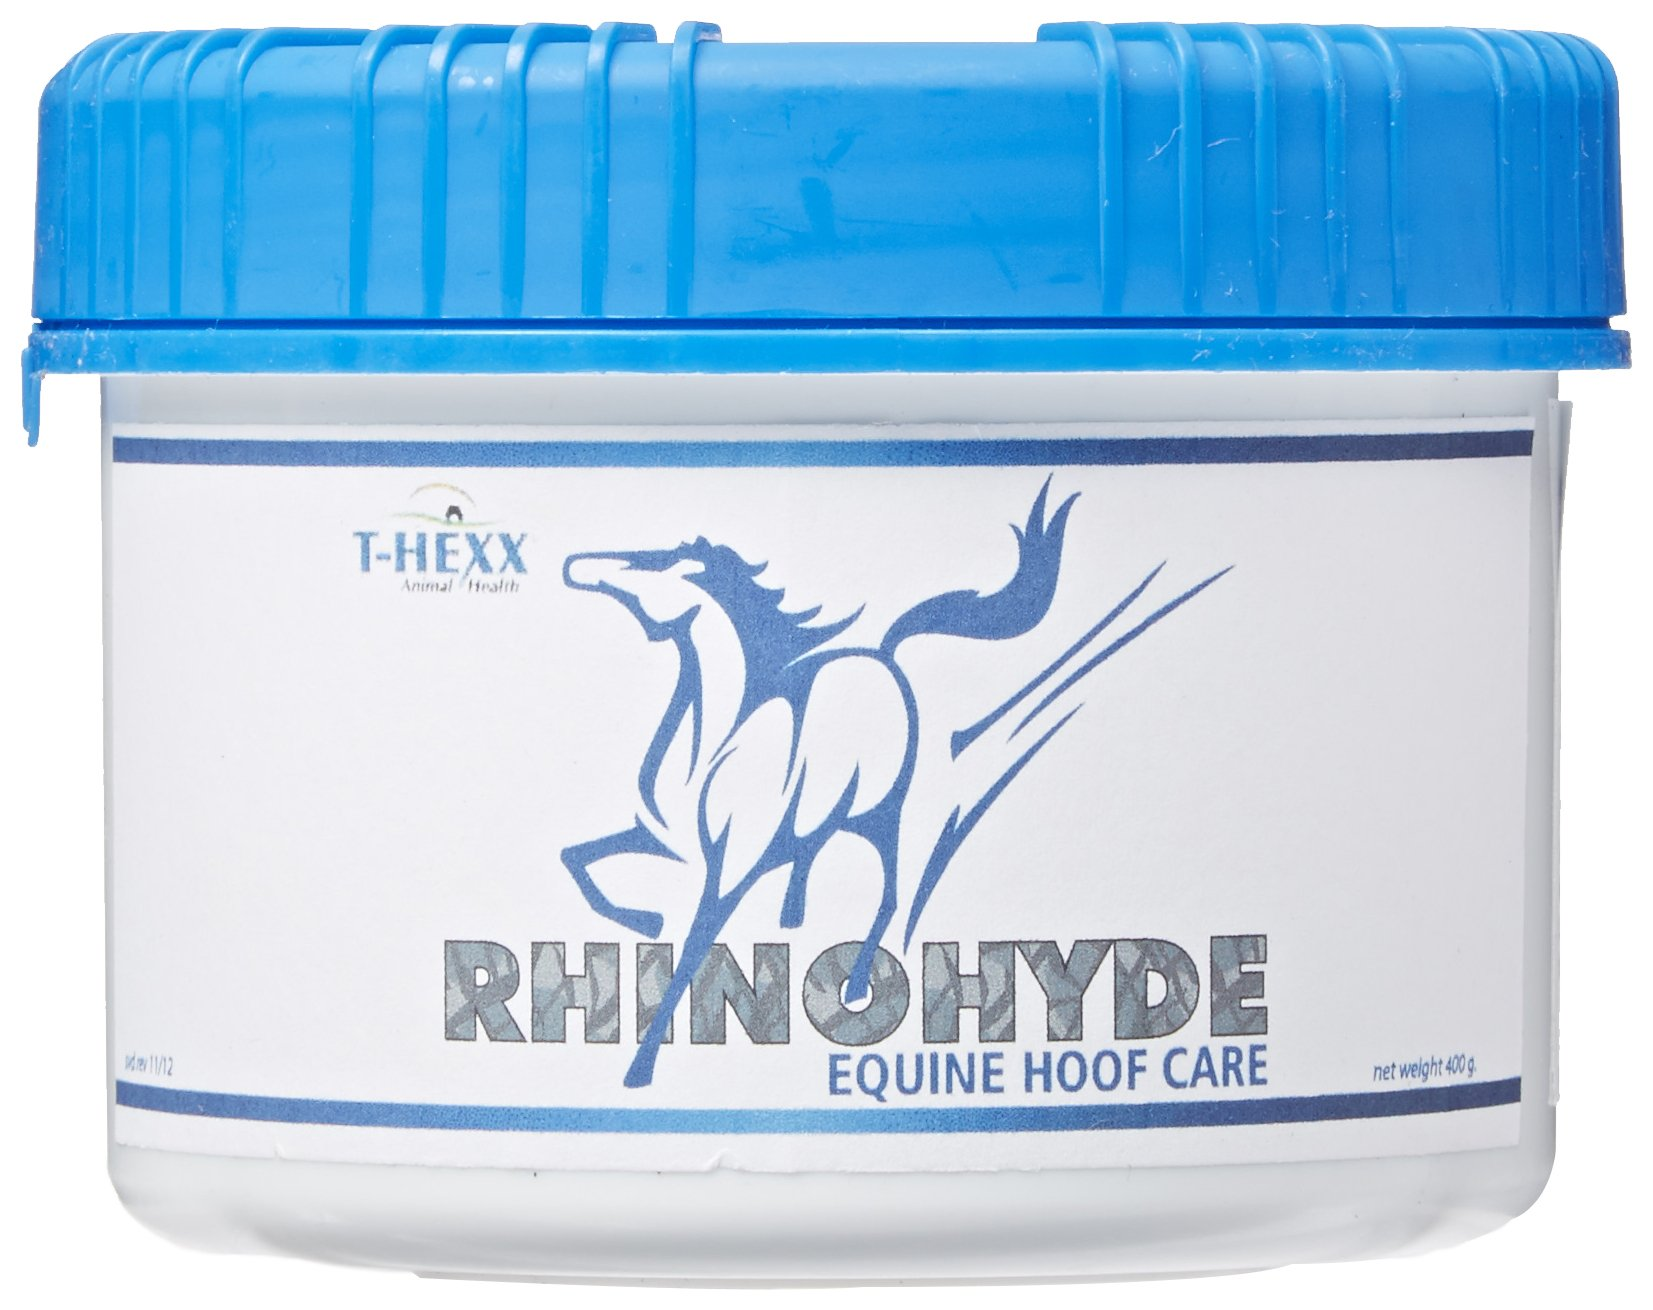 T-HEXX 1SOA14 Rhinohyde Equine Hoof Care Topical Paste, 6-Pack